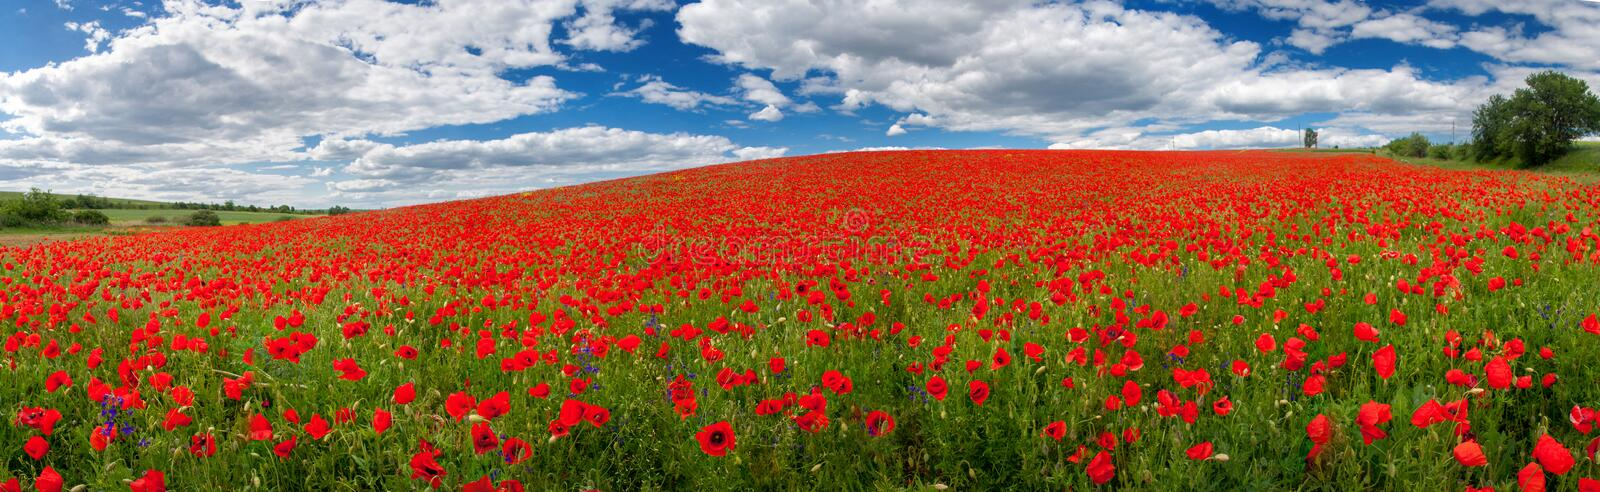 Flowers of red poppies. Summer landscape with red poppies. Panorama stock photography